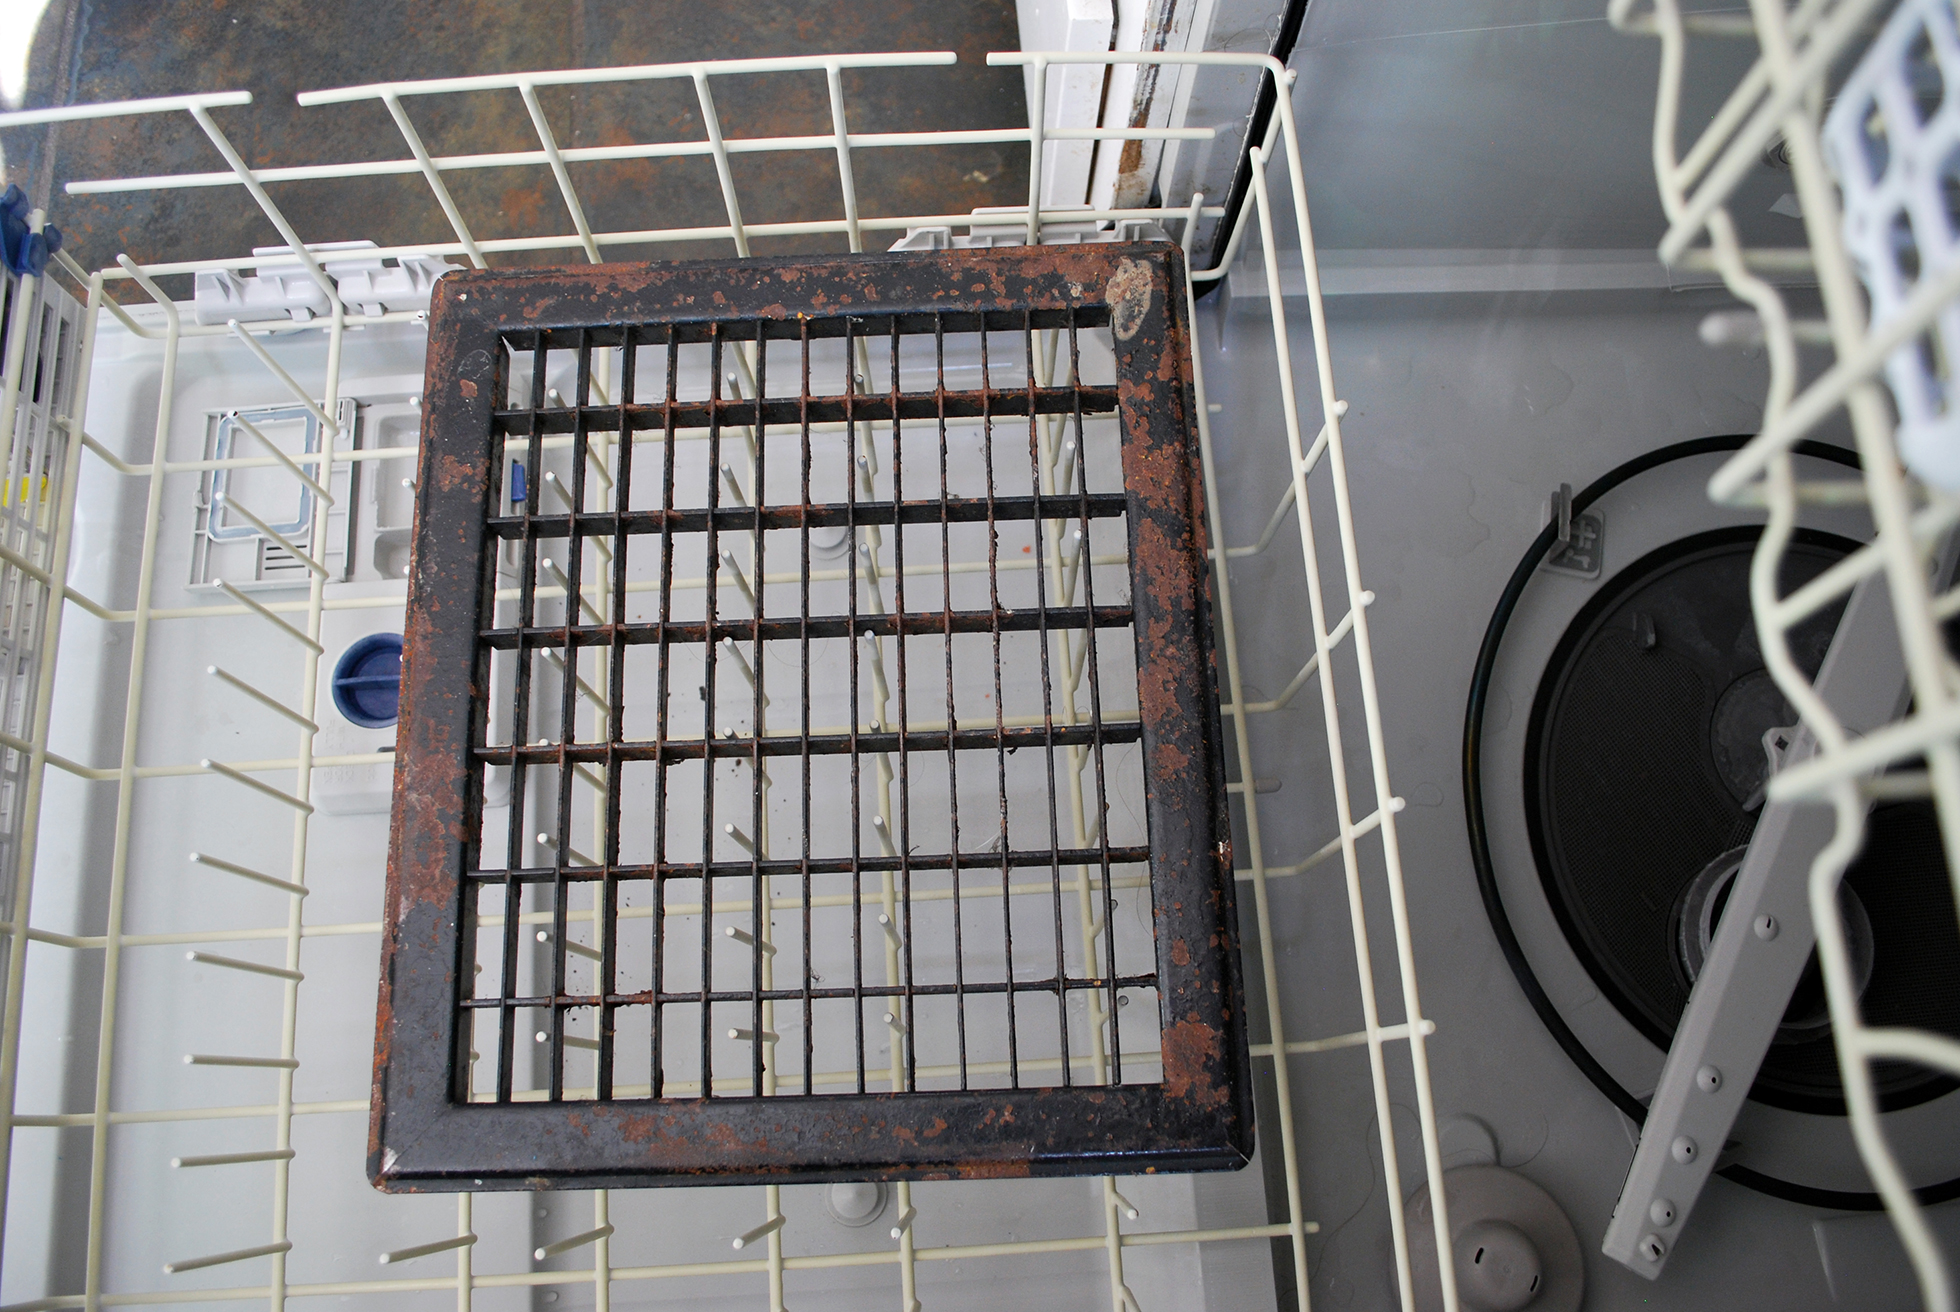 Cleaning floor vents in the dishwasher